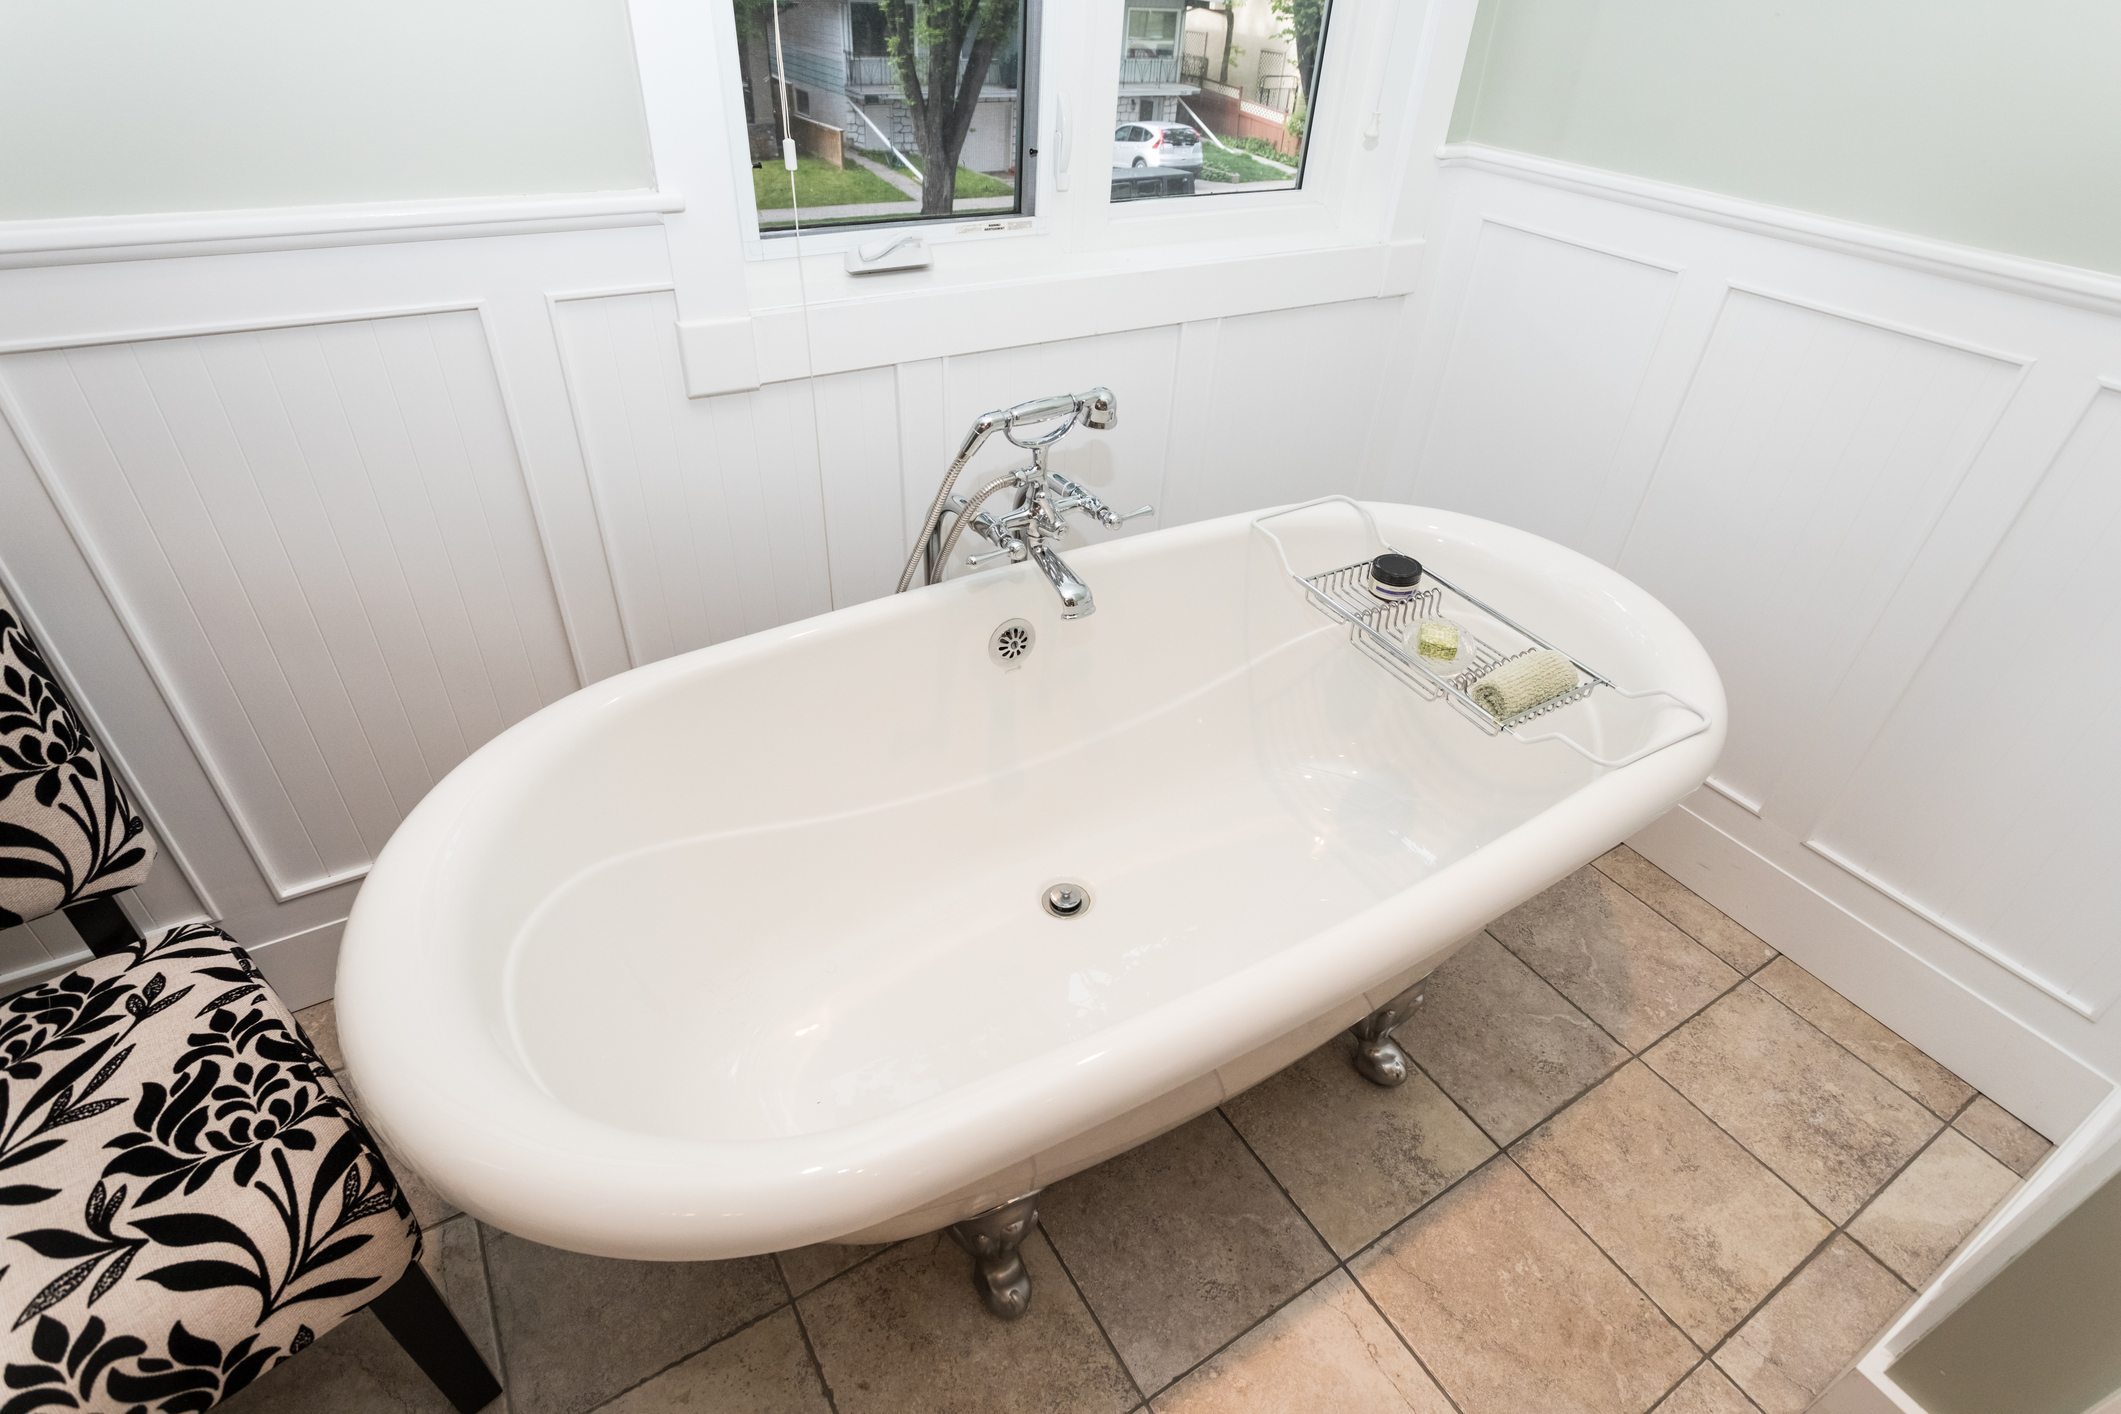 Stand alone clawfoot bathtub in clean bathroom